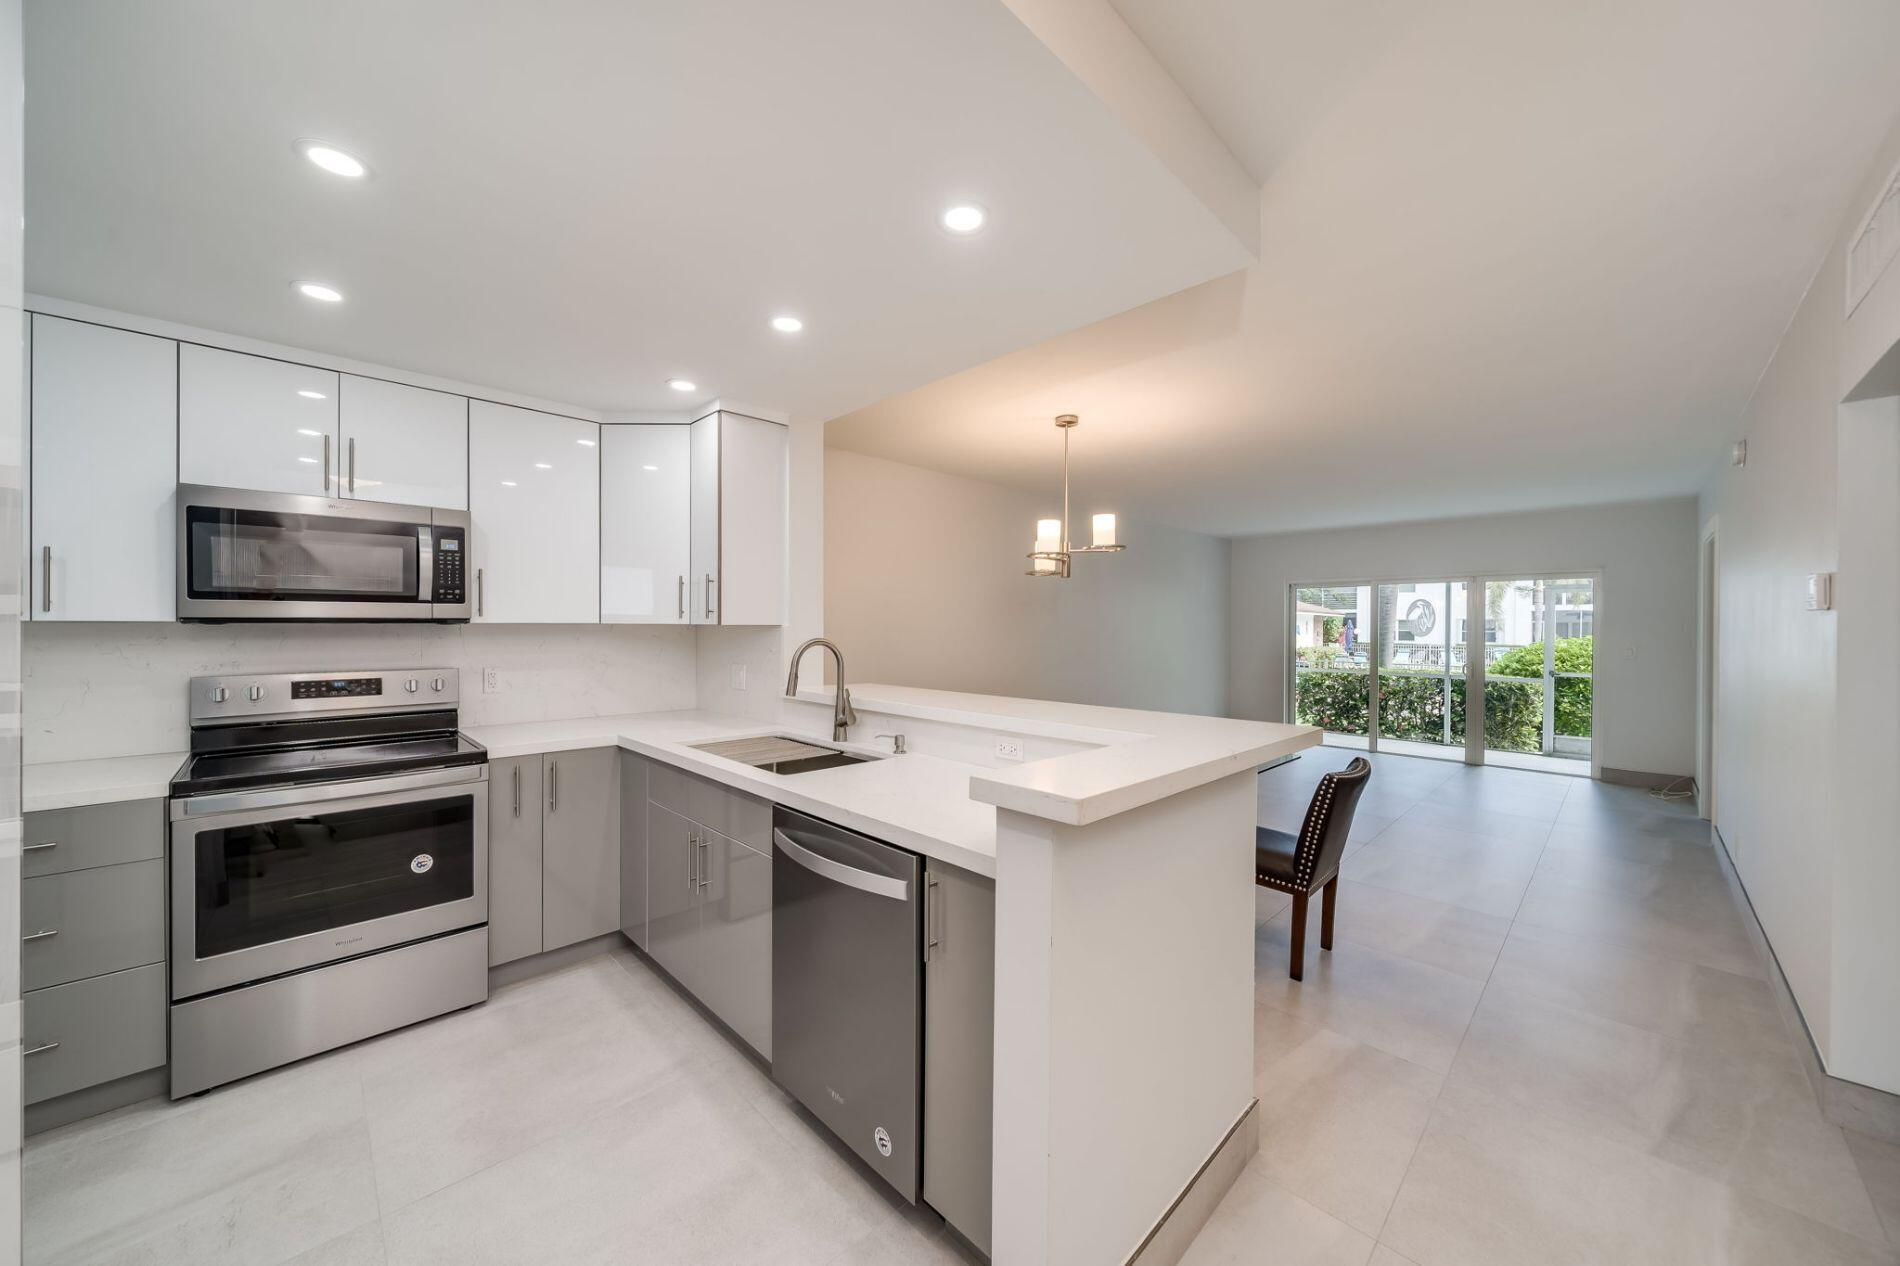 Home for sale in GARDENS BY THE SEA CONDO Lauderdale By The Sea Florida